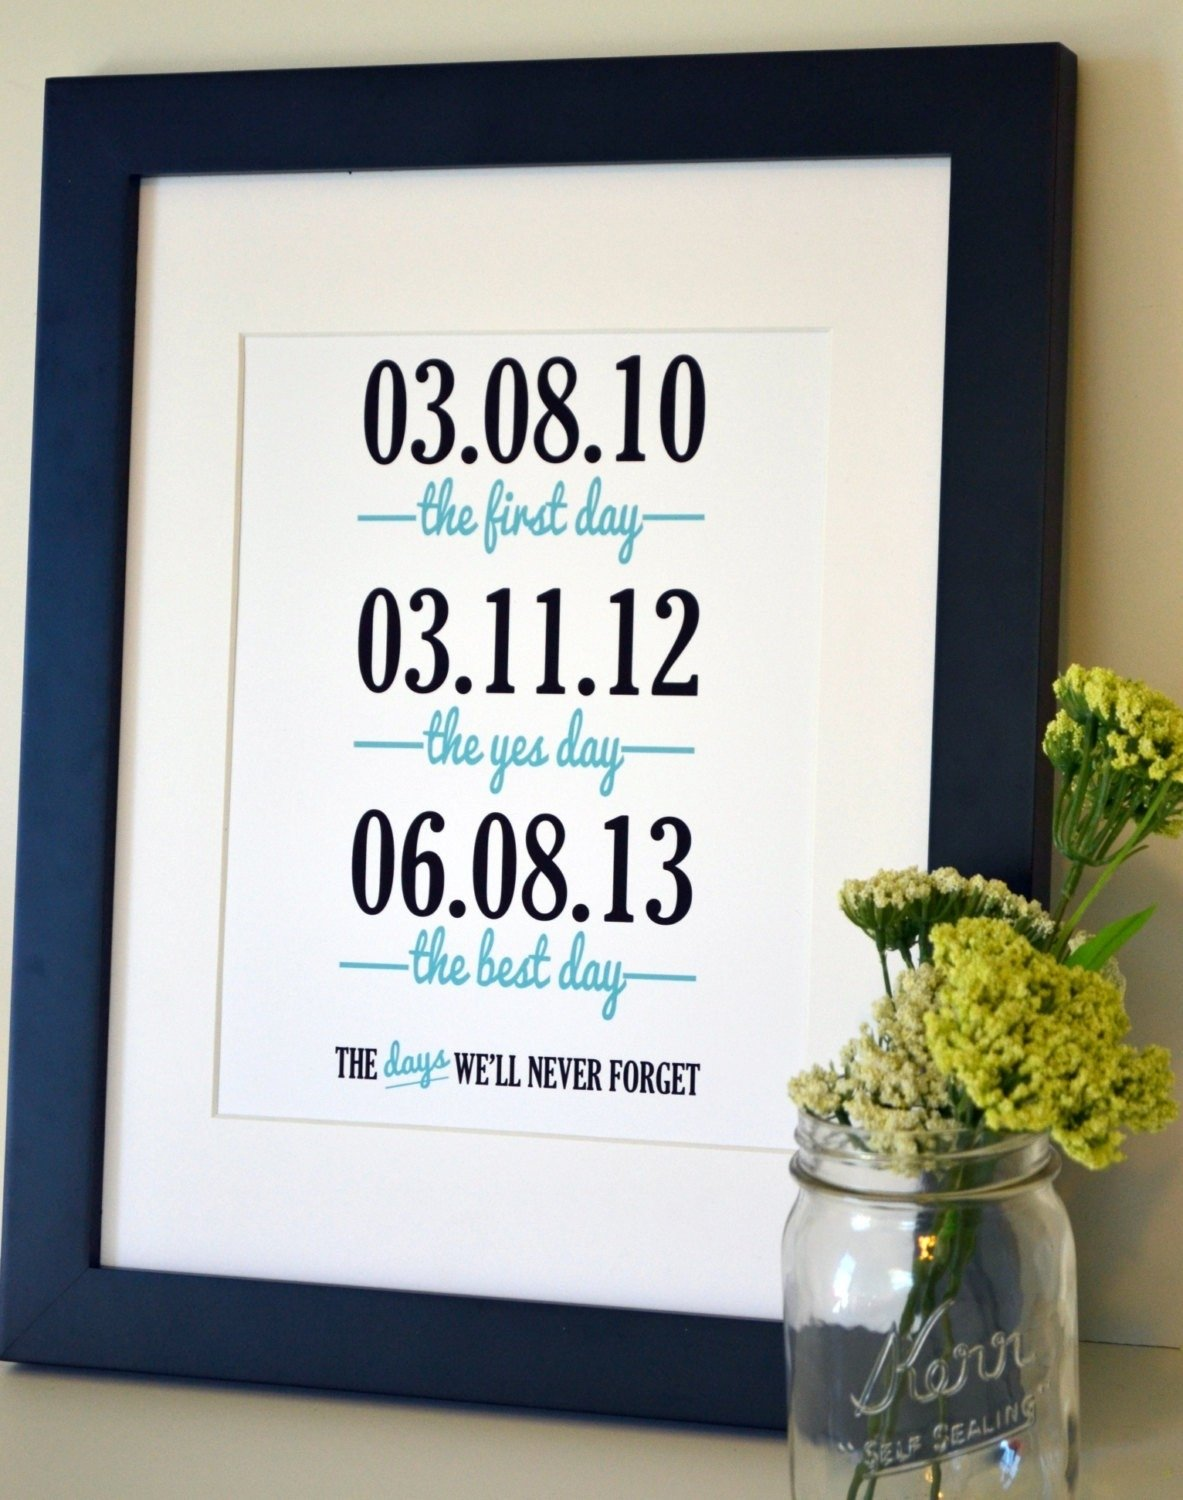 10 Amazing 1St Wedding Anniversary Gift Ideas For Him astonishing wedding anniversary gifts for him gift ideas both 6 3 2020